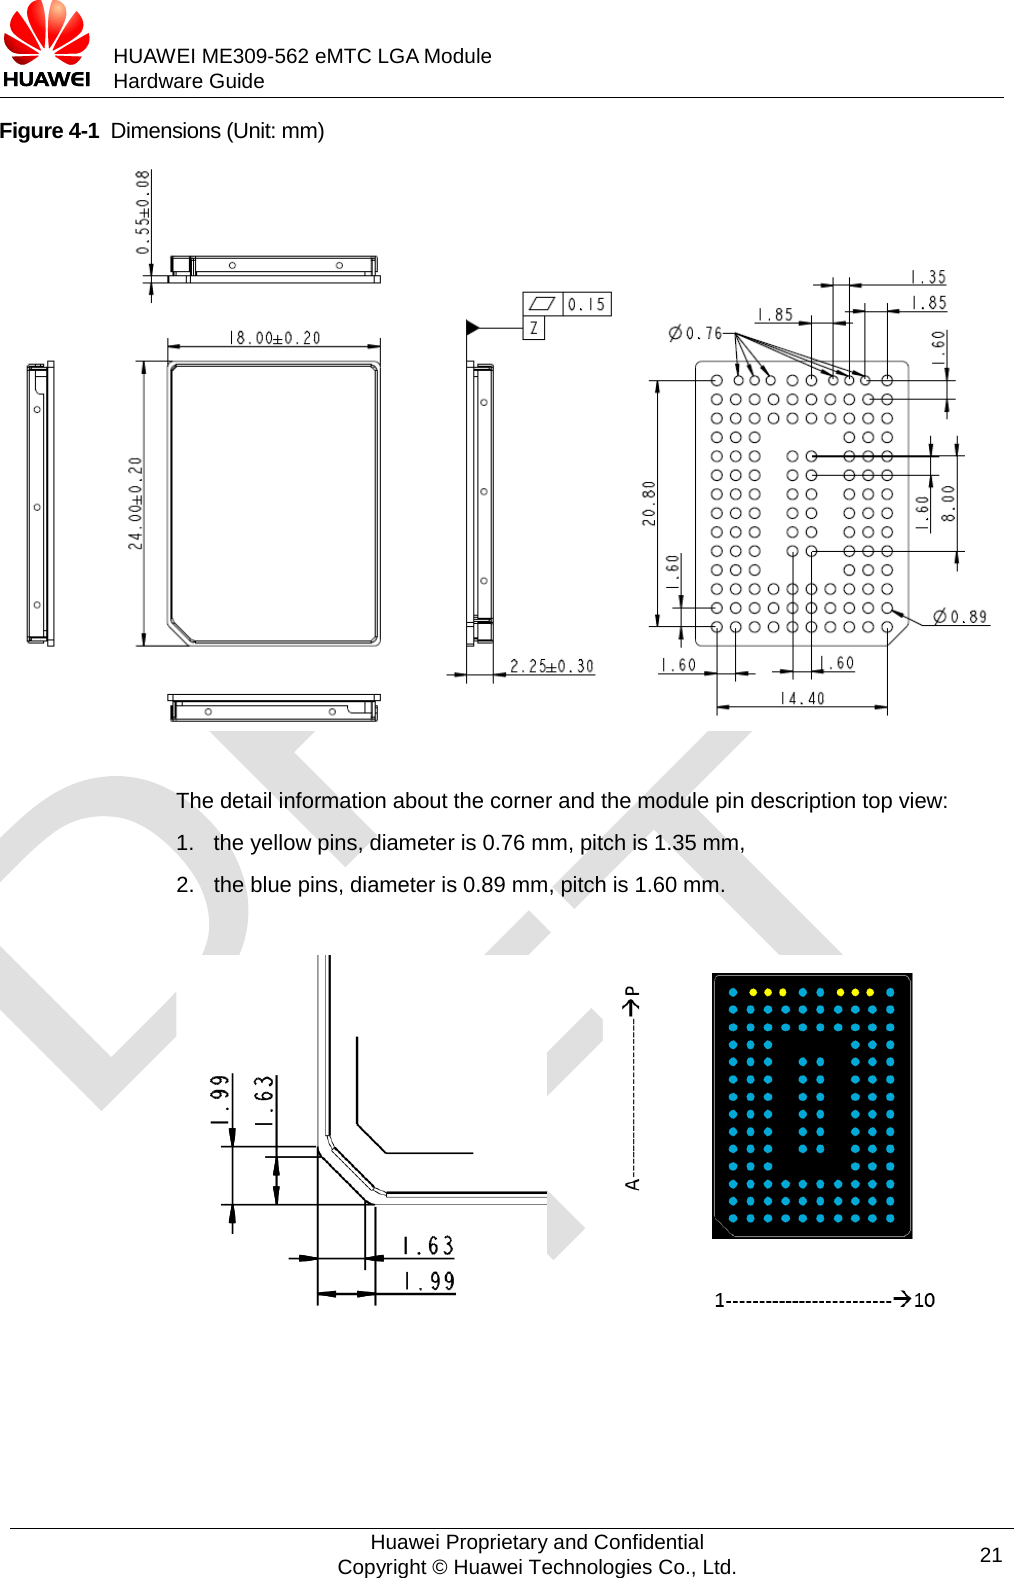 HUAWEI ME309-562 eMTC LGA Module Hardware Guide  Figure 4-1  Dimensions (Unit: mm)   The detail information about the corner and the module pin description top view: 1. the yellow pins, diameter is 0.76 mm, pitch is 1.35 mm, 2. the blue pins, diameter is 0.89 mm, pitch is 1.60 mm.            Huawei Proprietary and Confidential Copyright © Huawei Technologies Co., Ltd. 21